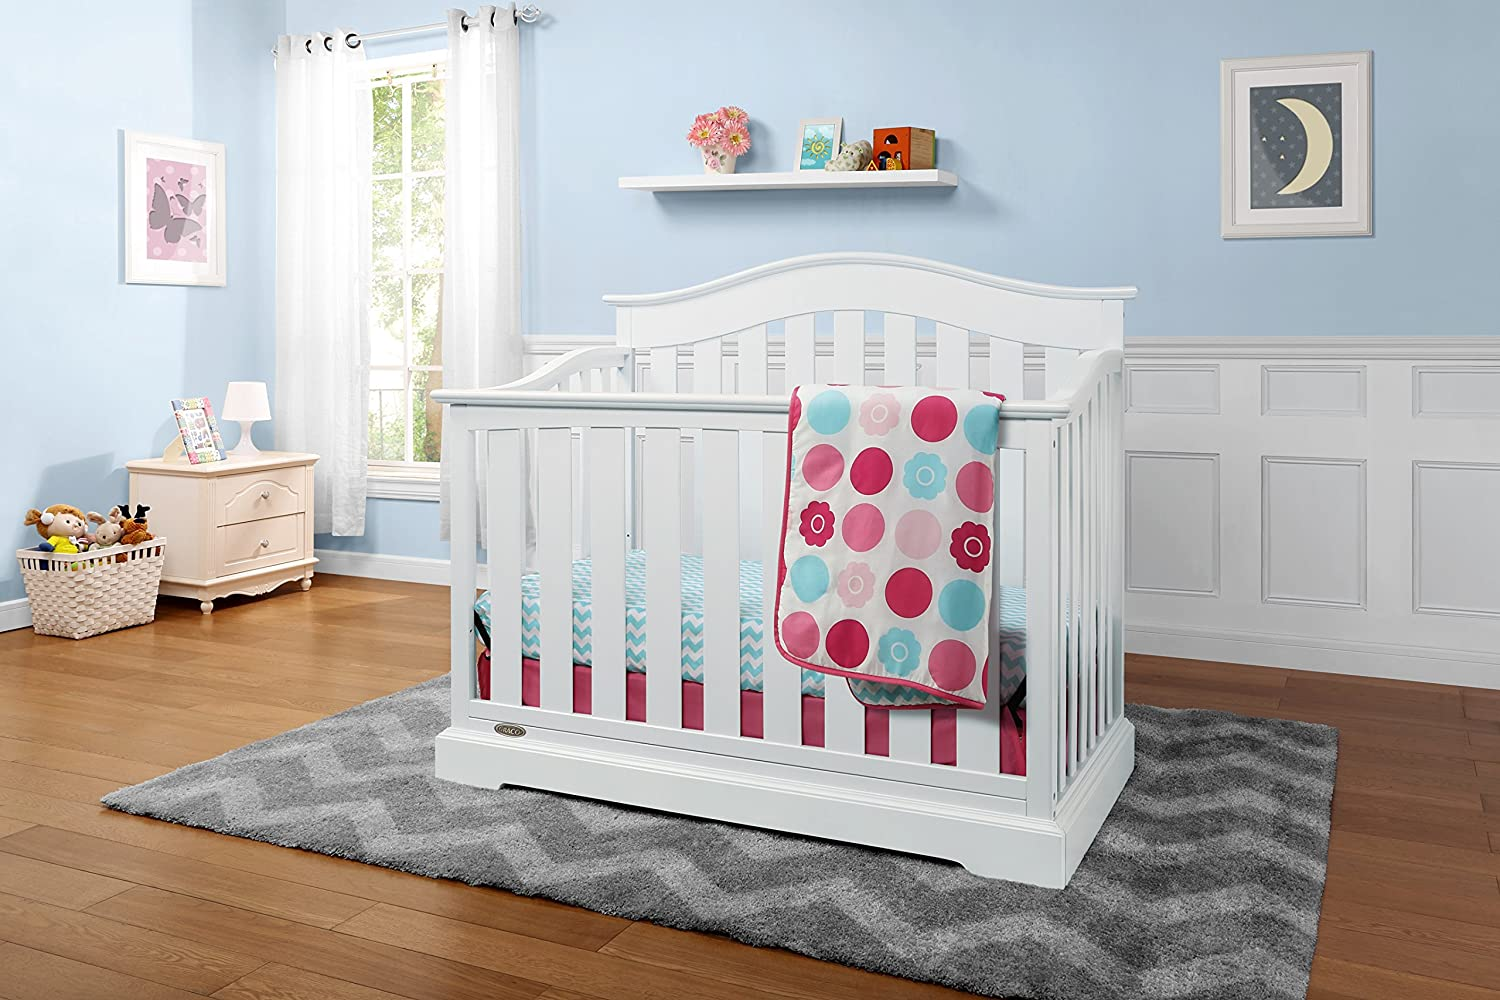 Graco Westbrook 4-in-1 Convertible Crib, White, Easily Converts to Toddler Bed Day Bed or Full Bed, Three Position Adjustable Height Mattress Mattress Not Included